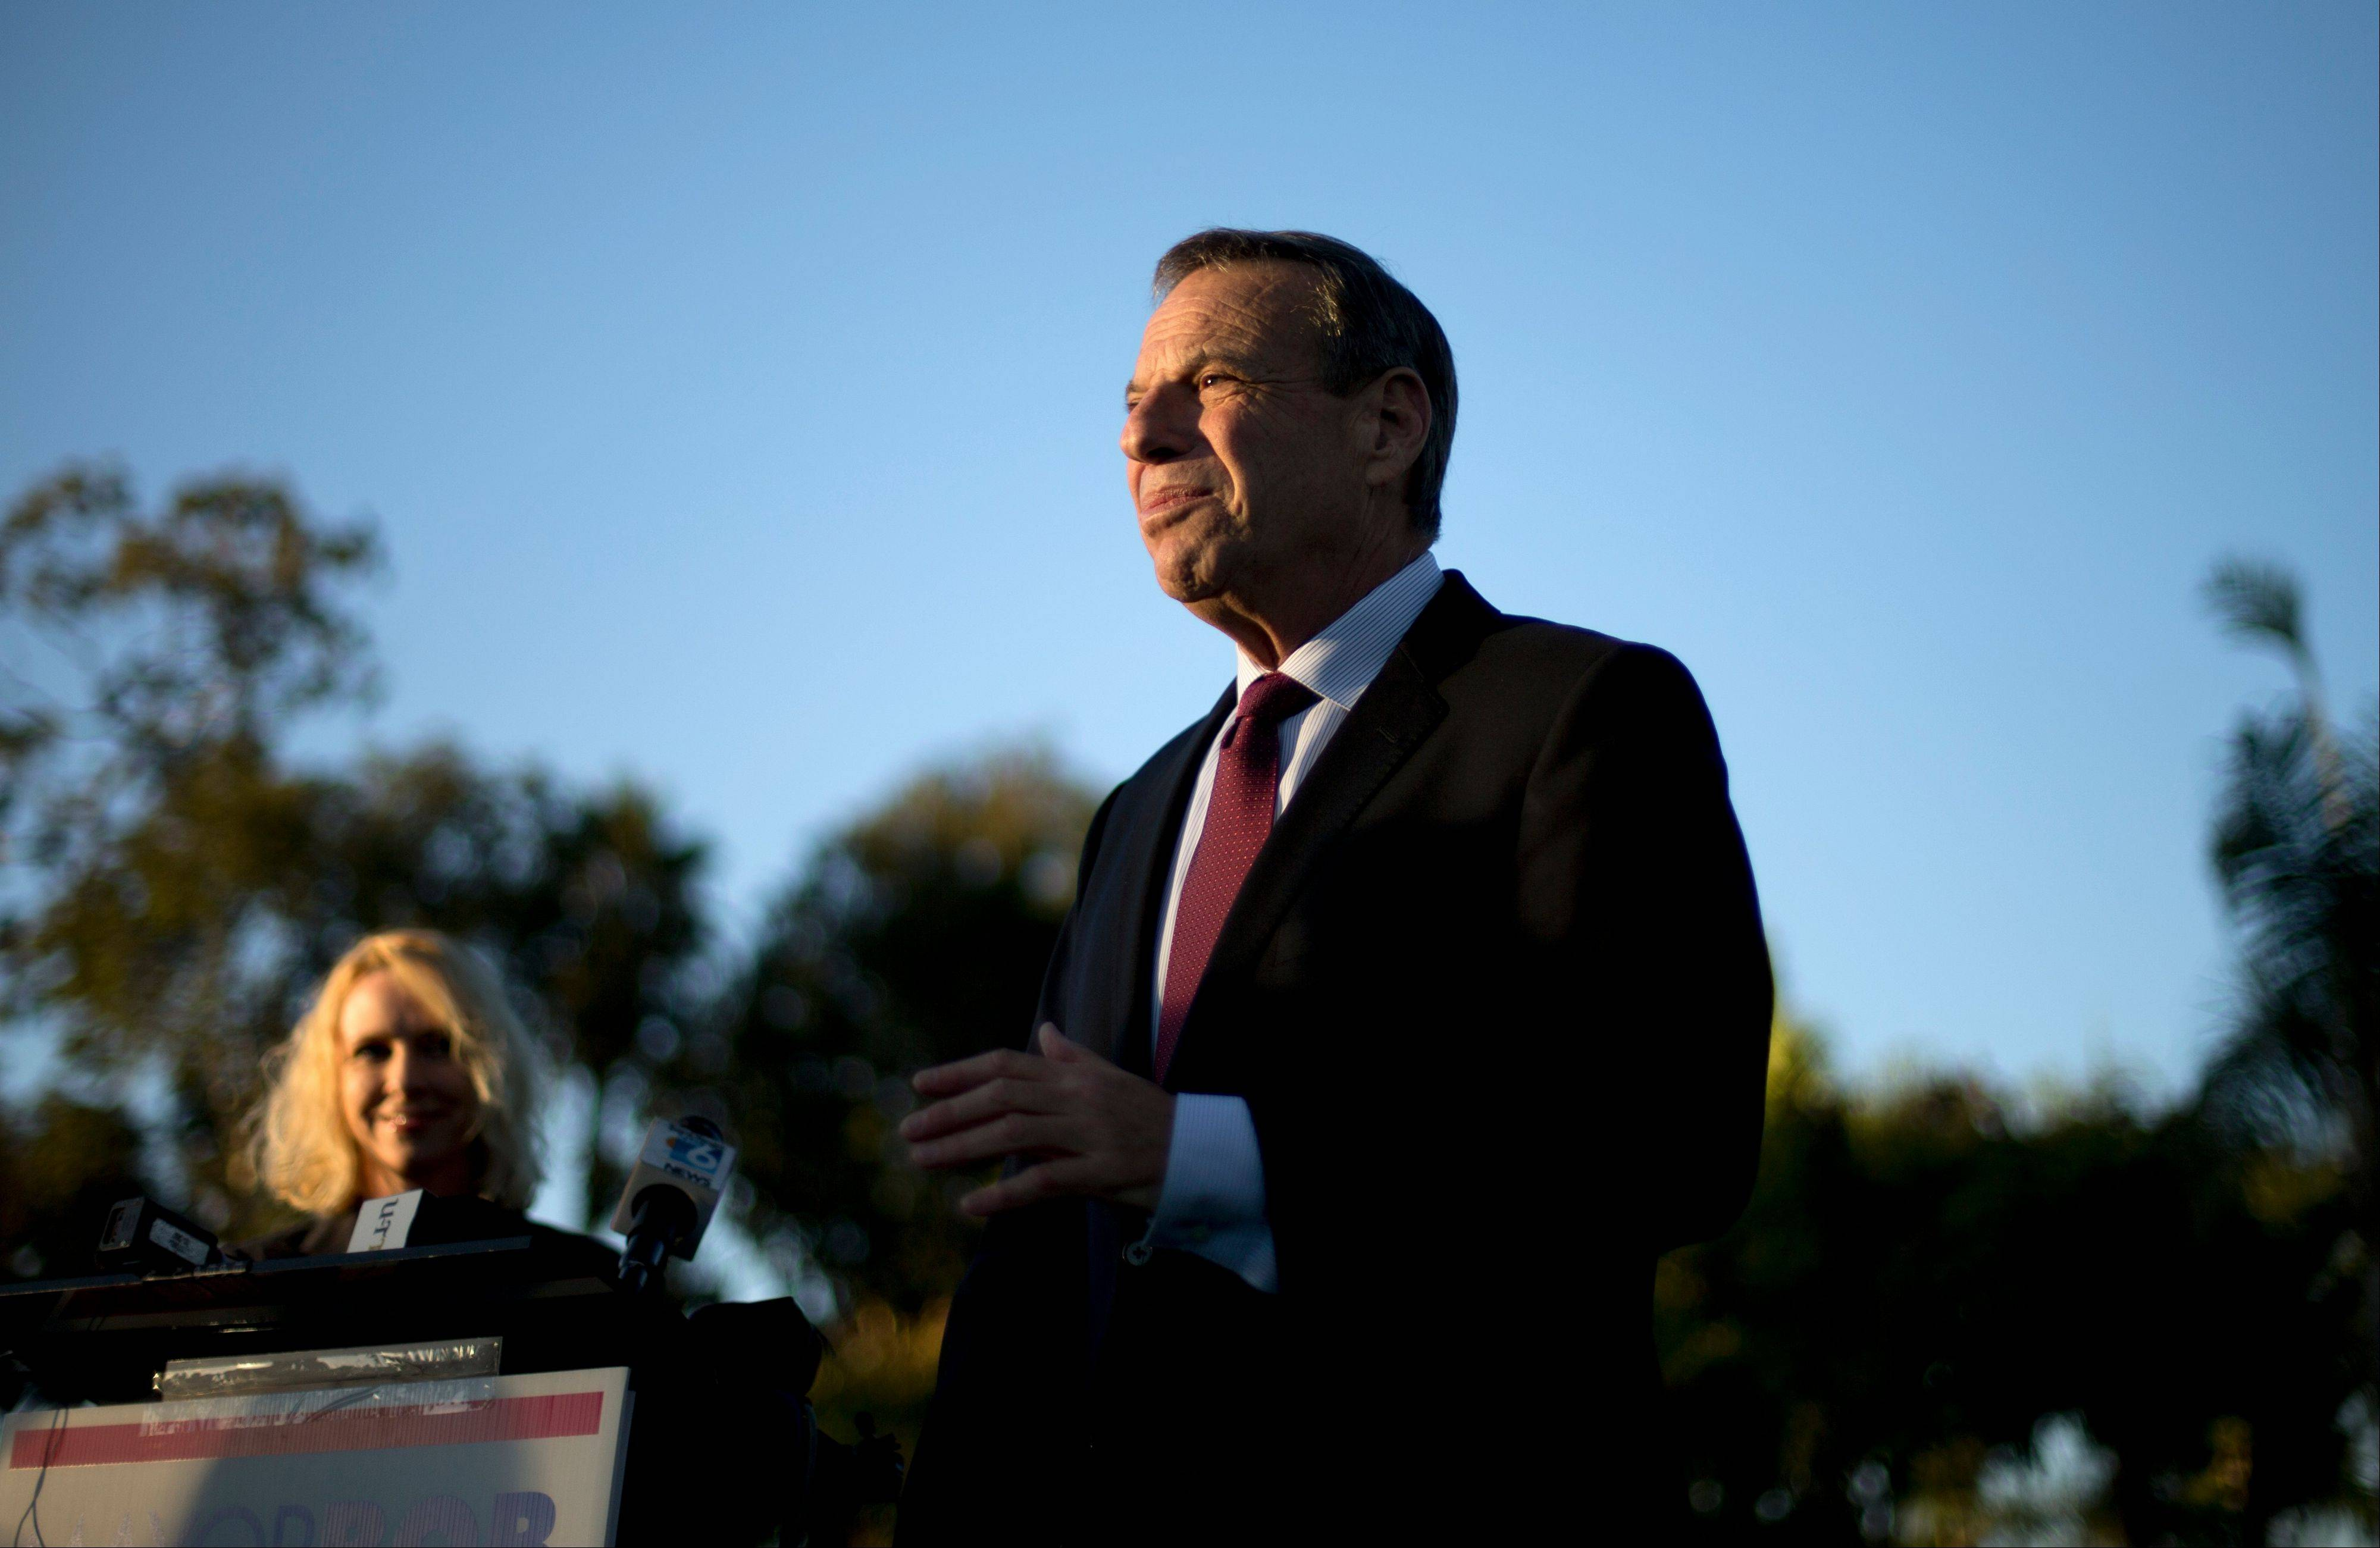 In this Nov. 7, 2012 file photo, San Diego Mayor Bob Filner, right, speaks alongside his then-fiancee Bronwyn Ingram, left, during a news conference at a park in San Diego. It has been anything but normal for San Diego and its first Democratic leader in 20 years since prominent former supporters alleged two weeks ago that the mayor sexually harassed women and demanded he resign.